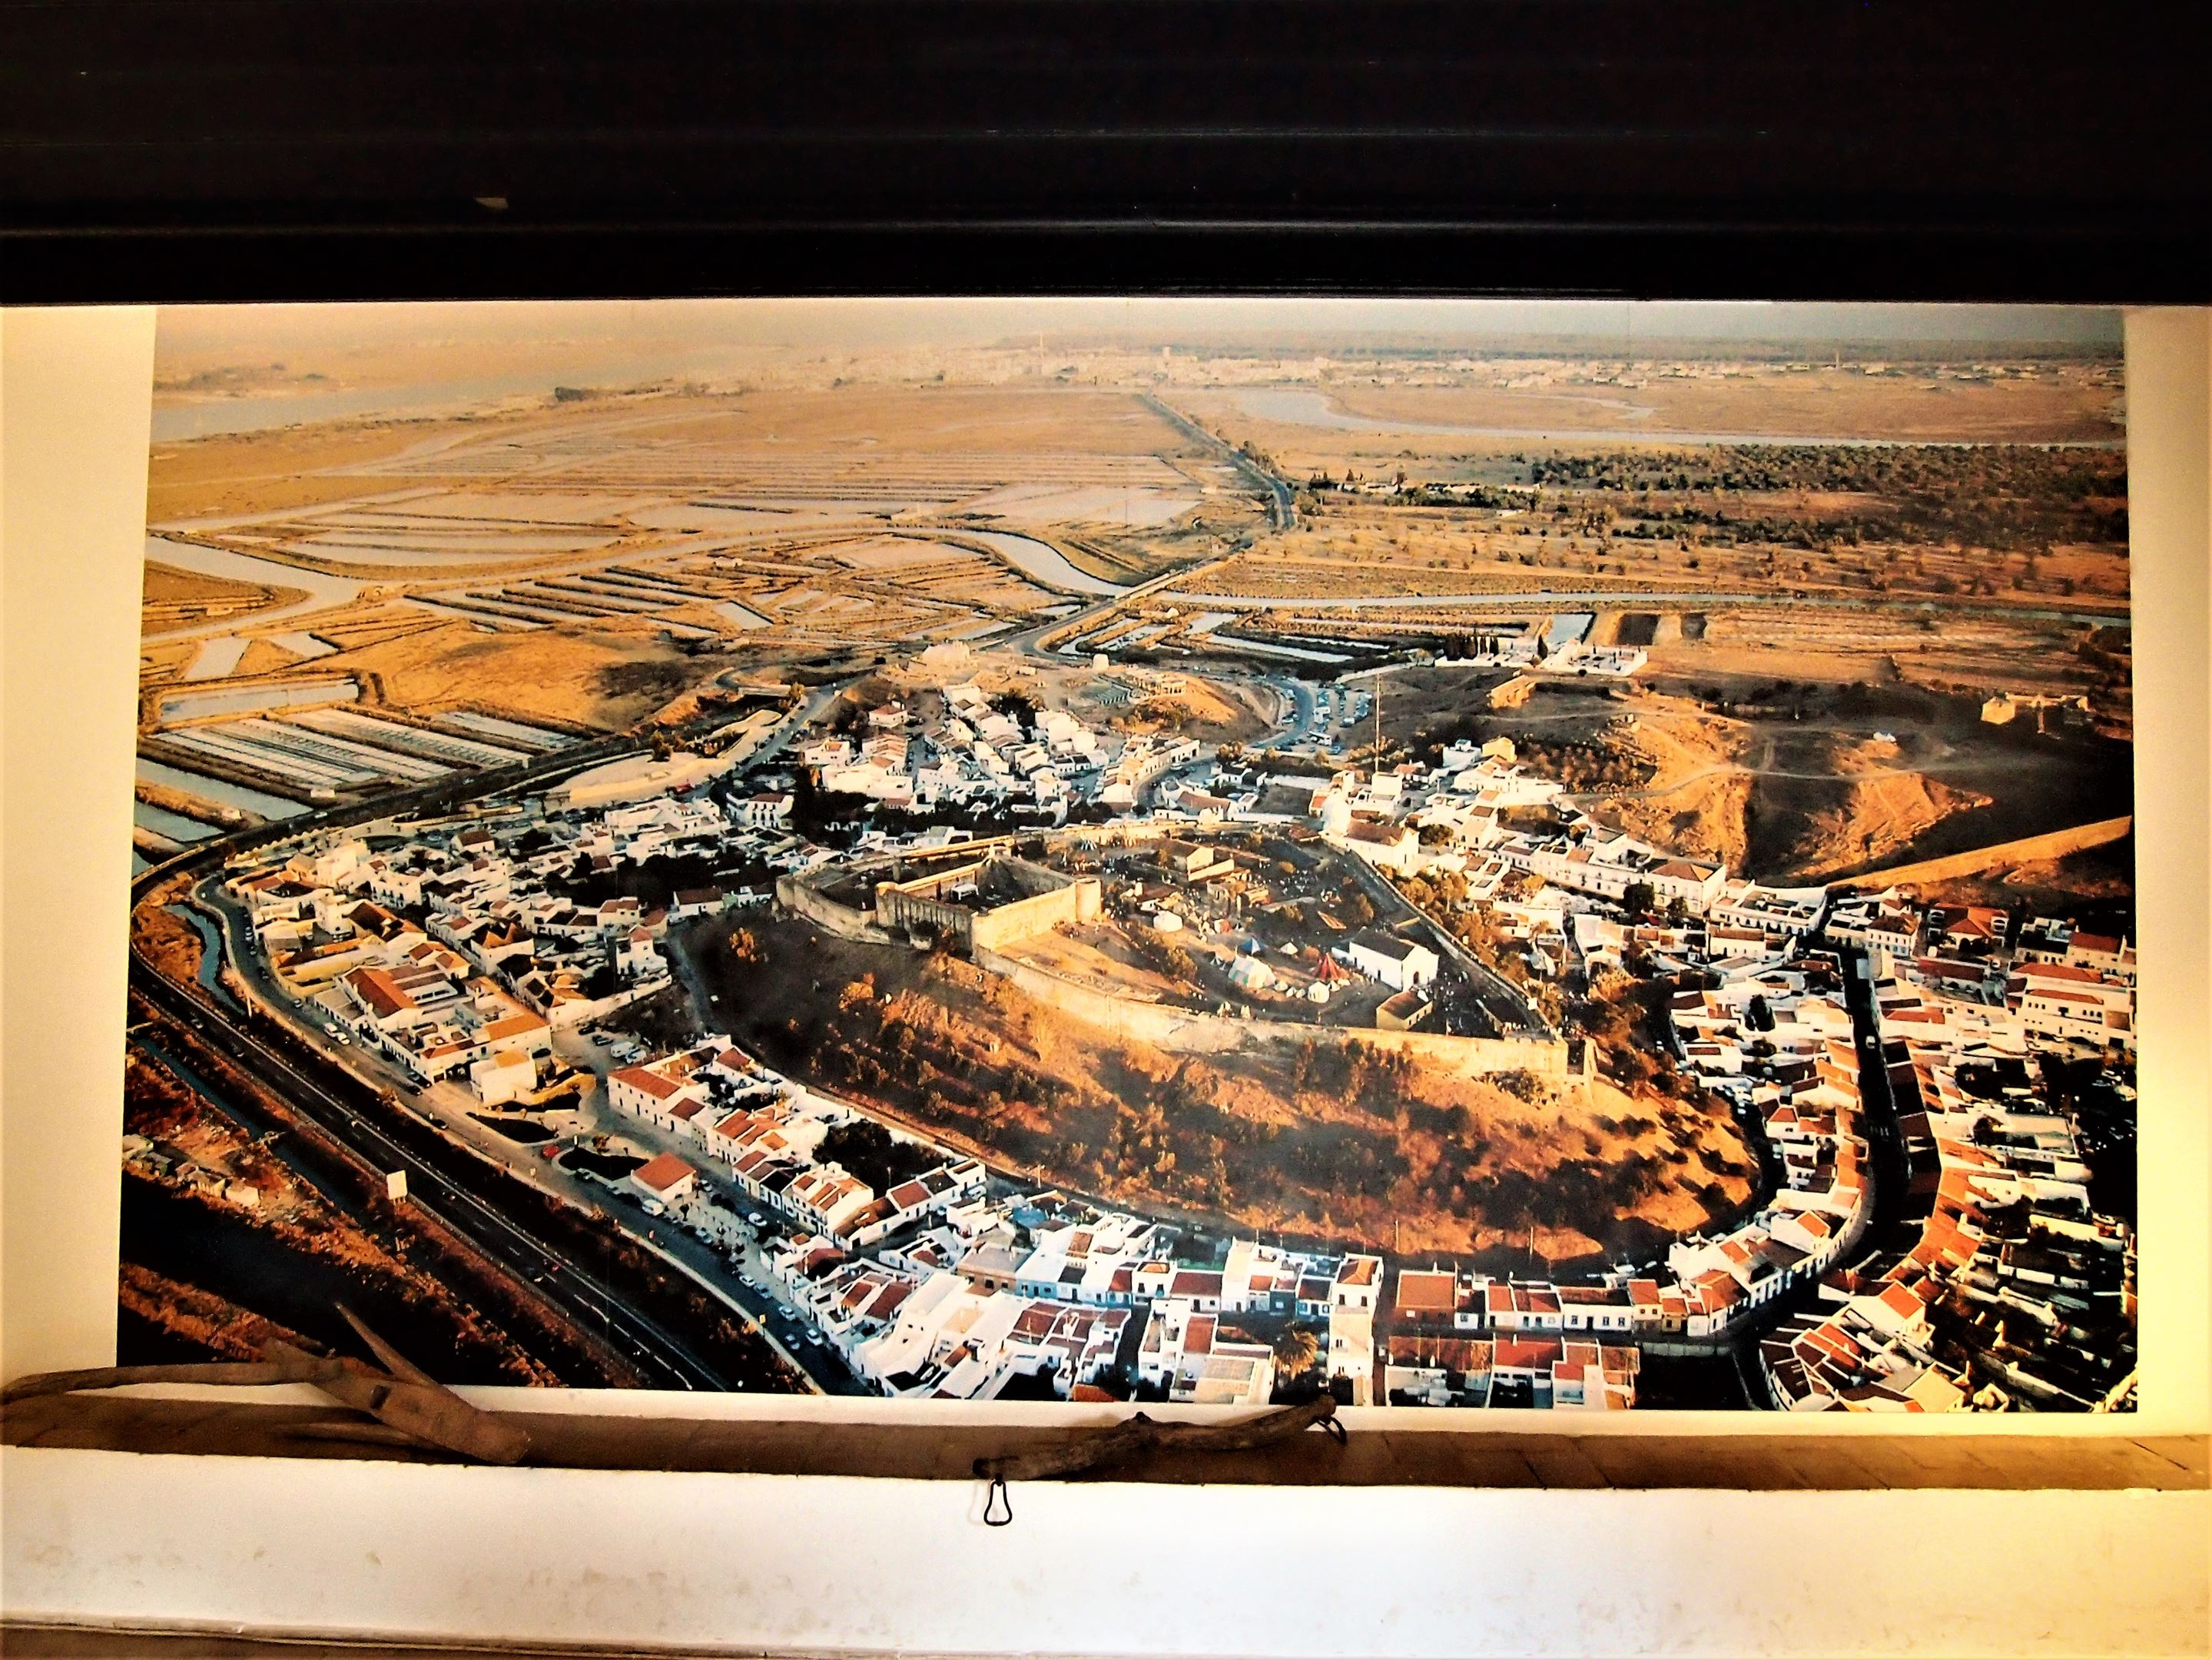 A picture at the entrance to the archaeological museum in Castro Marim, showing the town and the castle sitting strategically at the top of the hill.